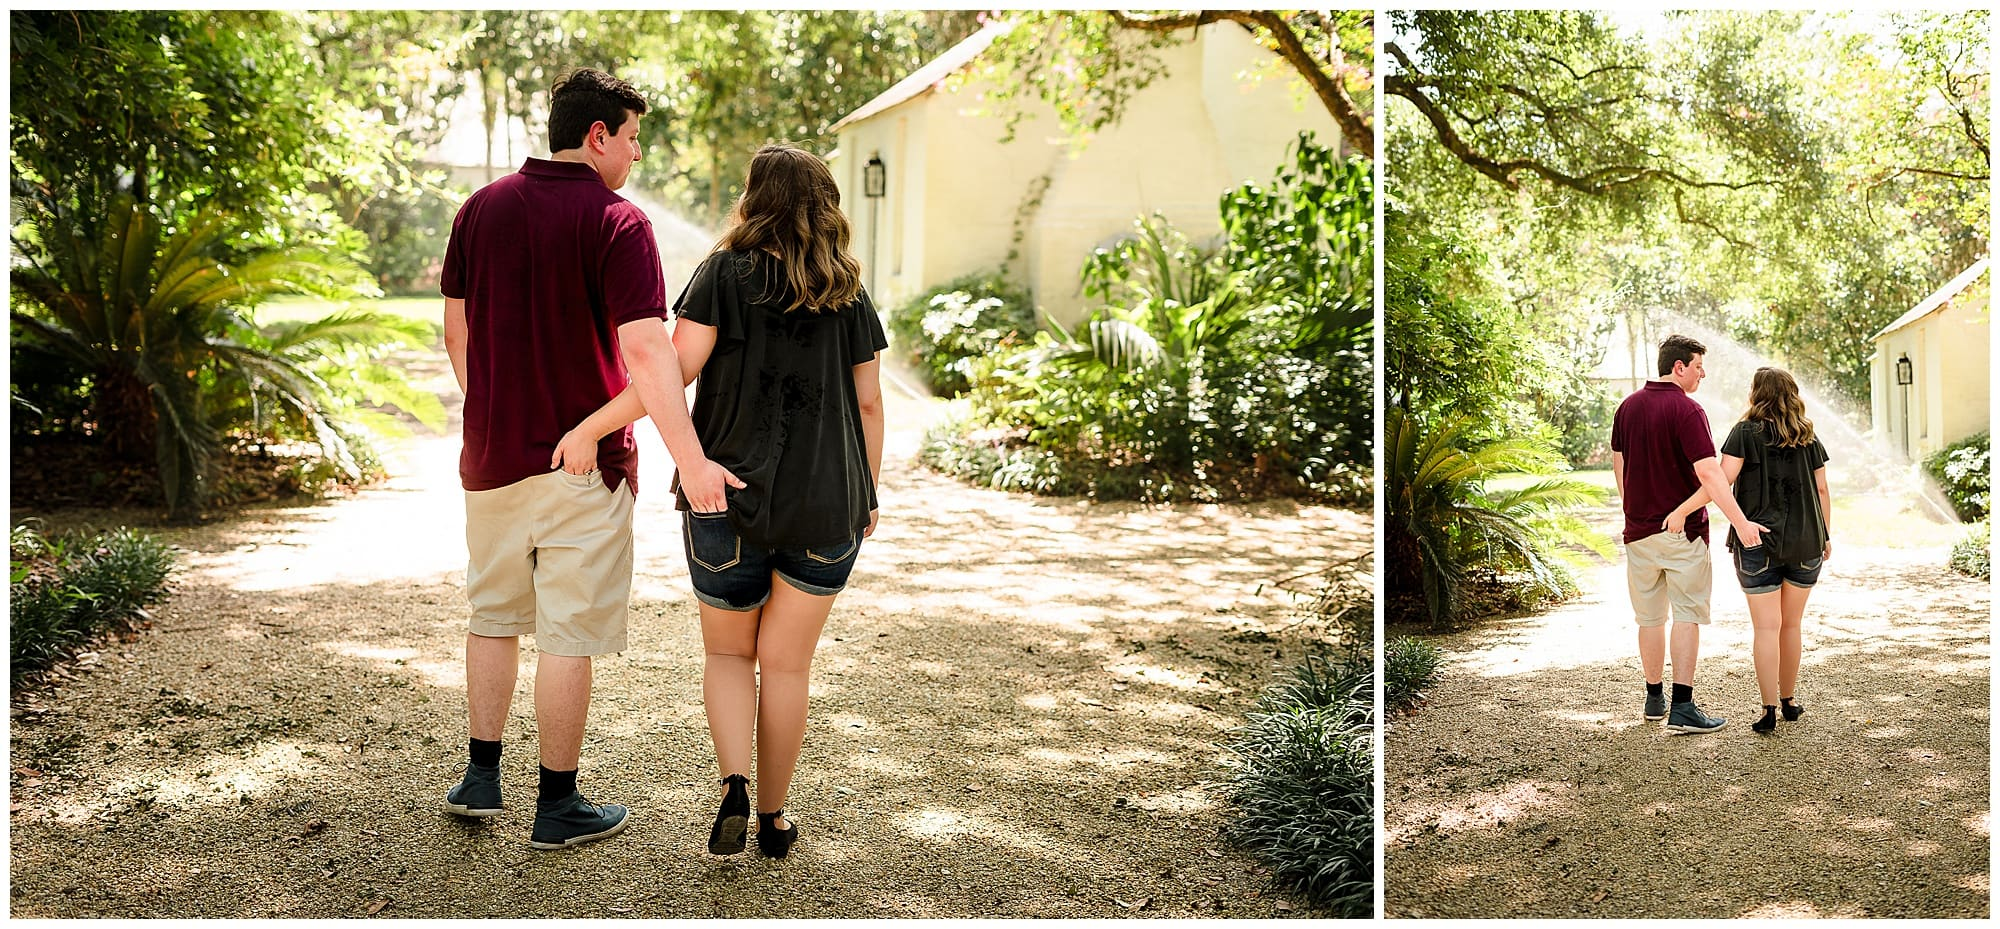 Couple waking with hands in back pockets at Windrush Gardens